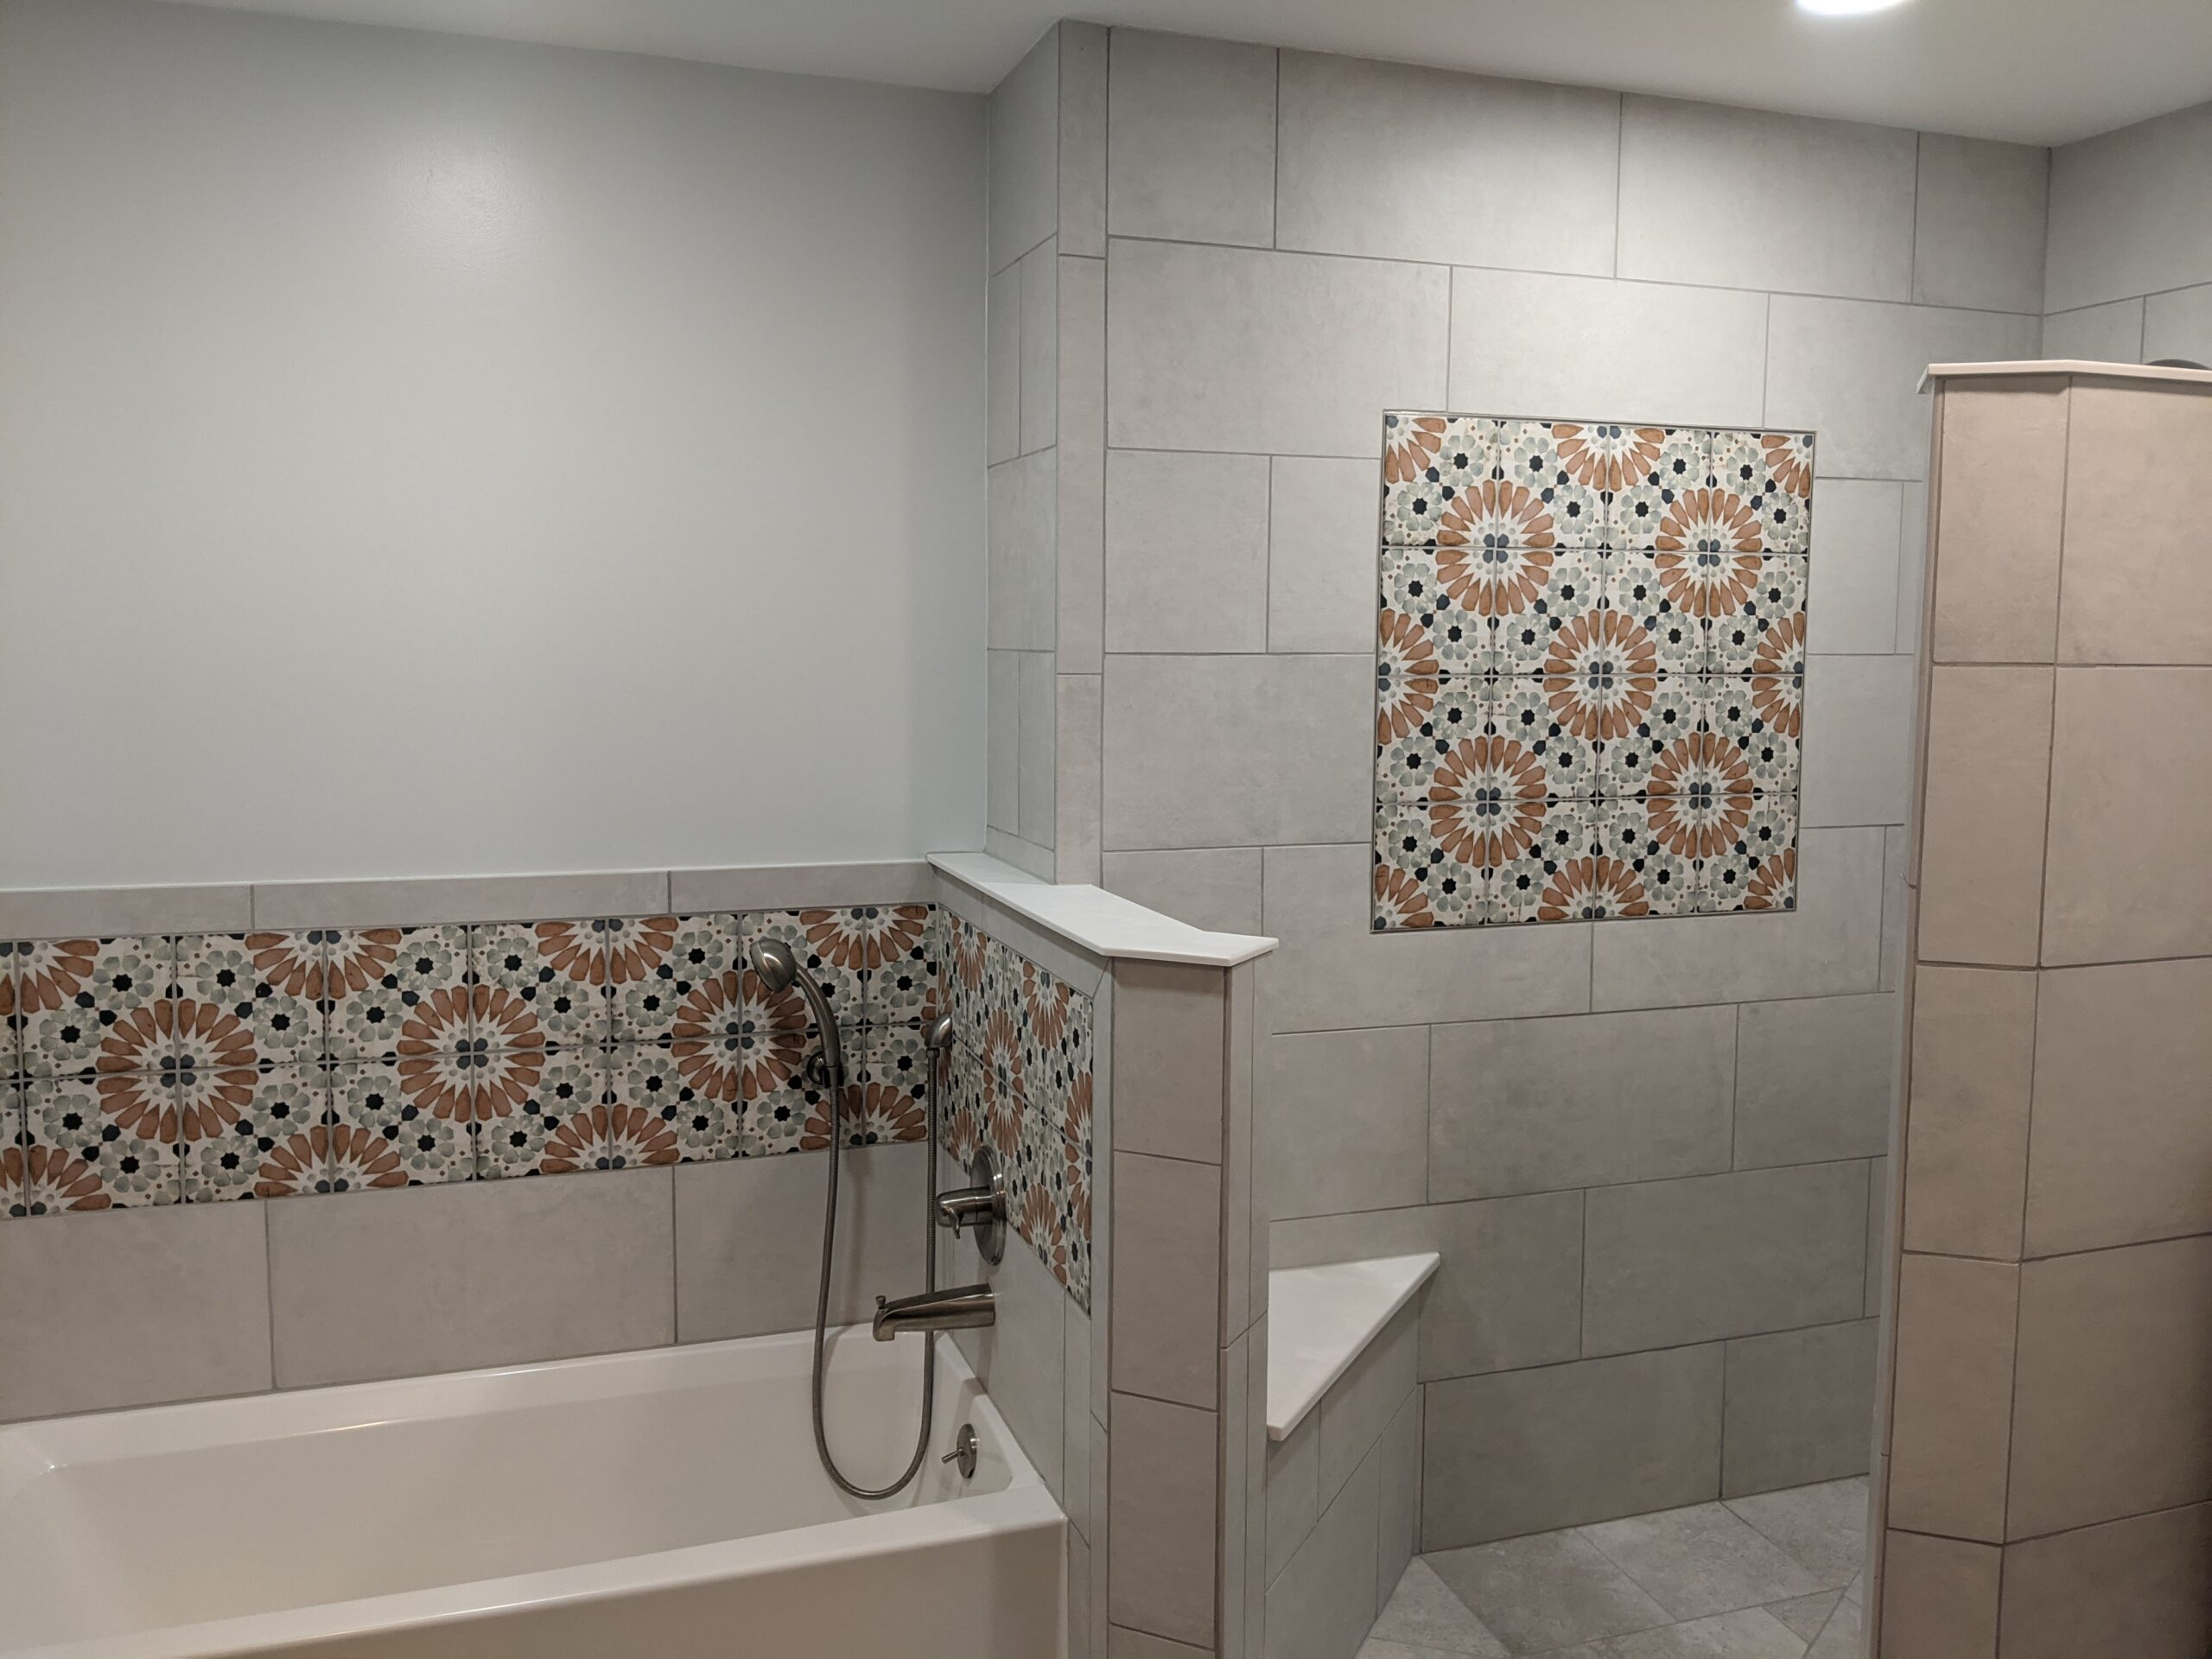 Tiled walls with decorative tile inserts allow the shower and tub areas to flow into eachother